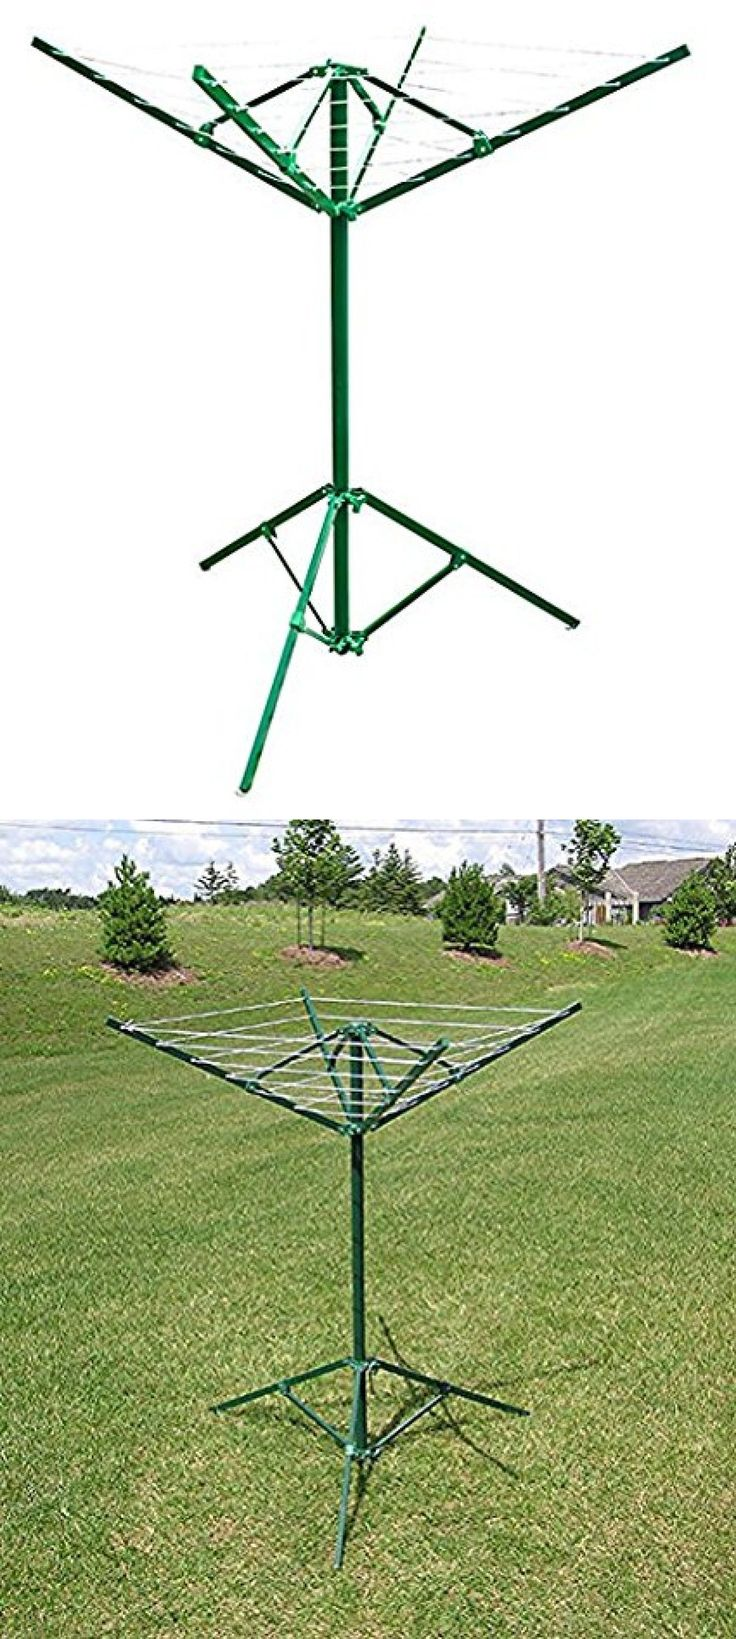 Clotheslines And Laundry Hangers 81241: Portable Outdoor Rotary Clothesline  Laundry Dryer Clothes Line Drying Rack